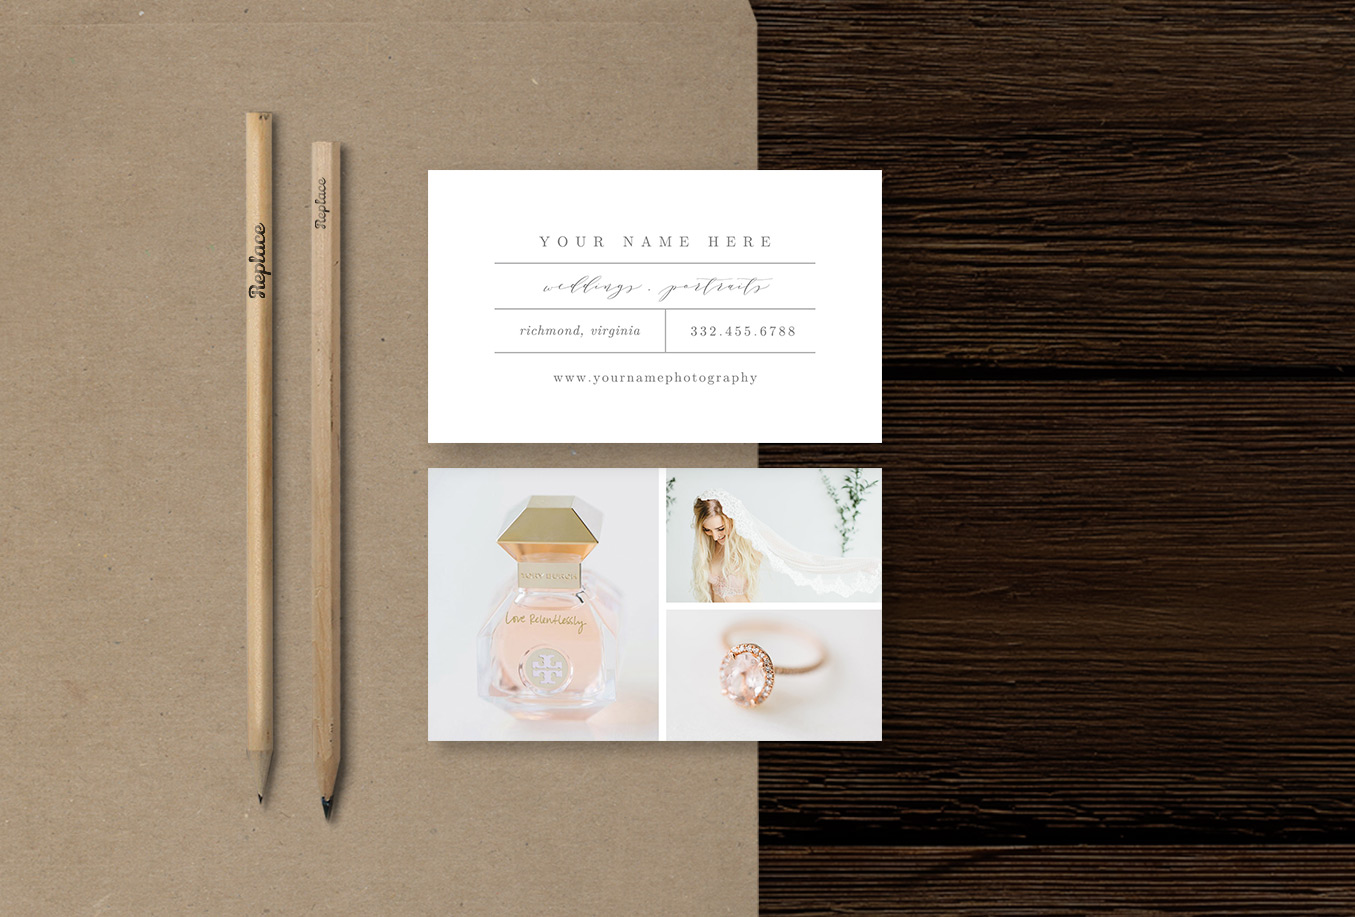 photographer business card inspiration | bittersweet design boutique | wedding photographer marketing templates